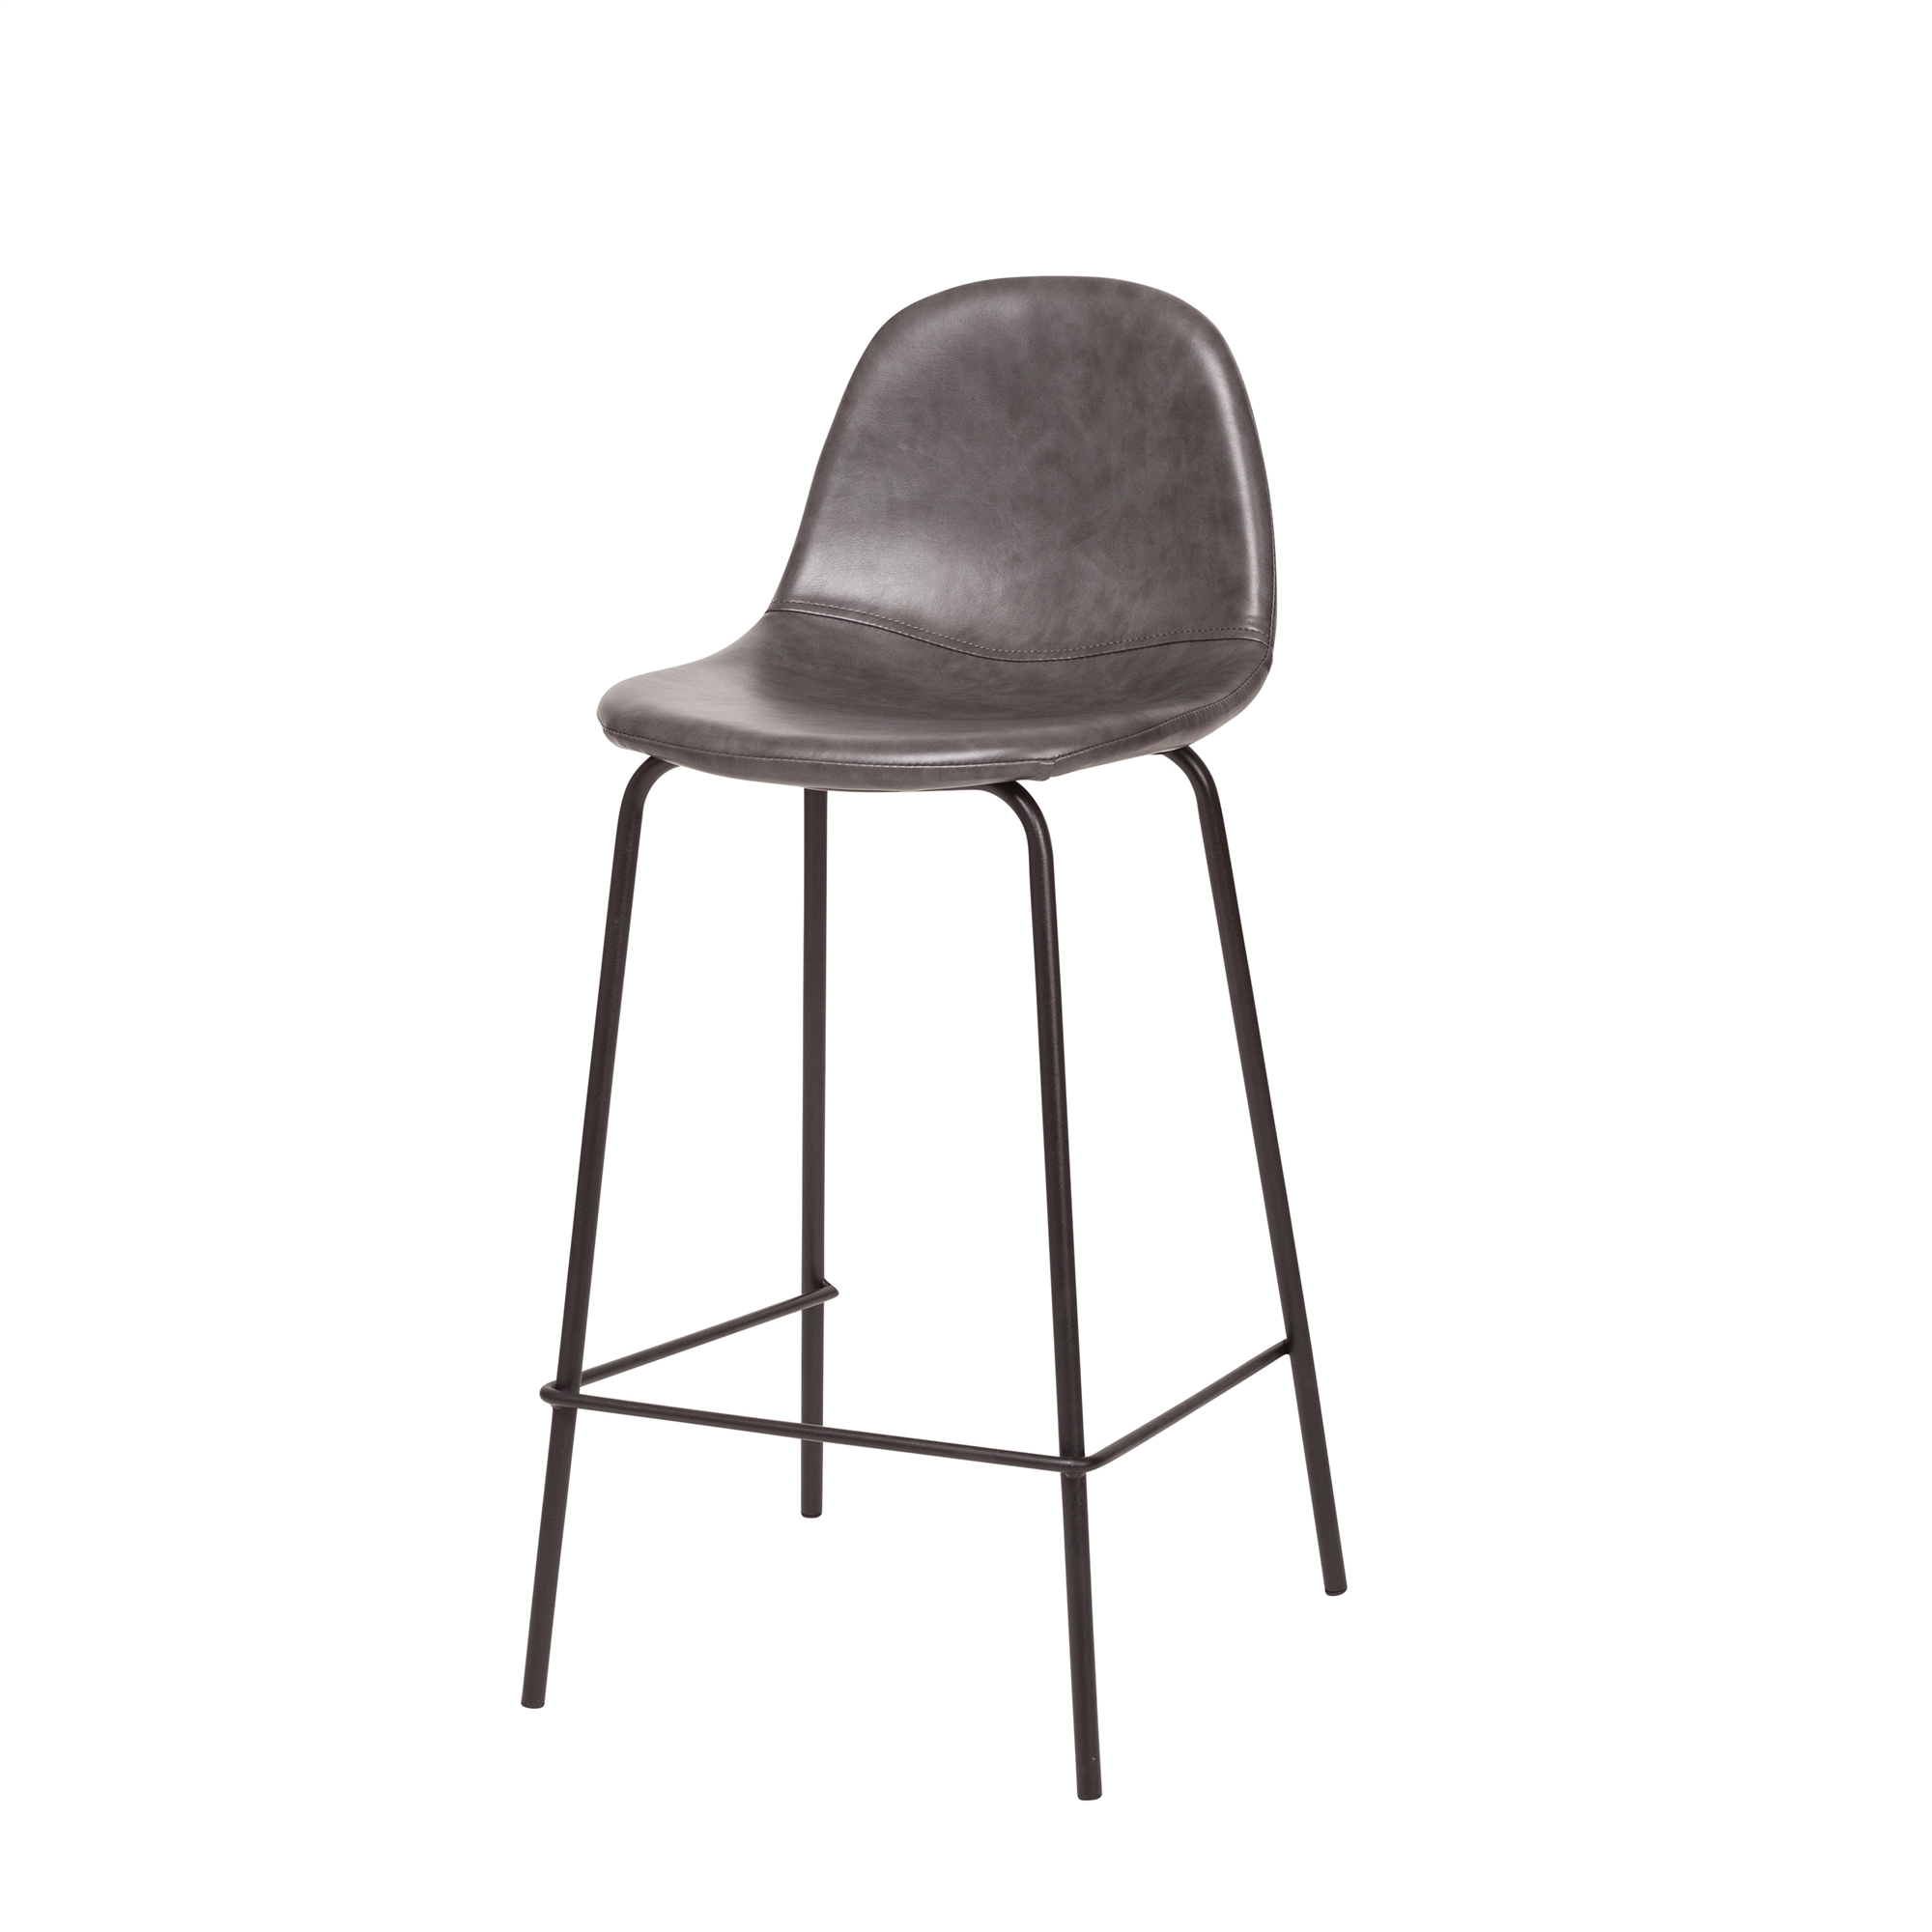 Astounding Smart Counter Stool In Distressed Grey Leather Pabps2019 Chair Design Images Pabps2019Com